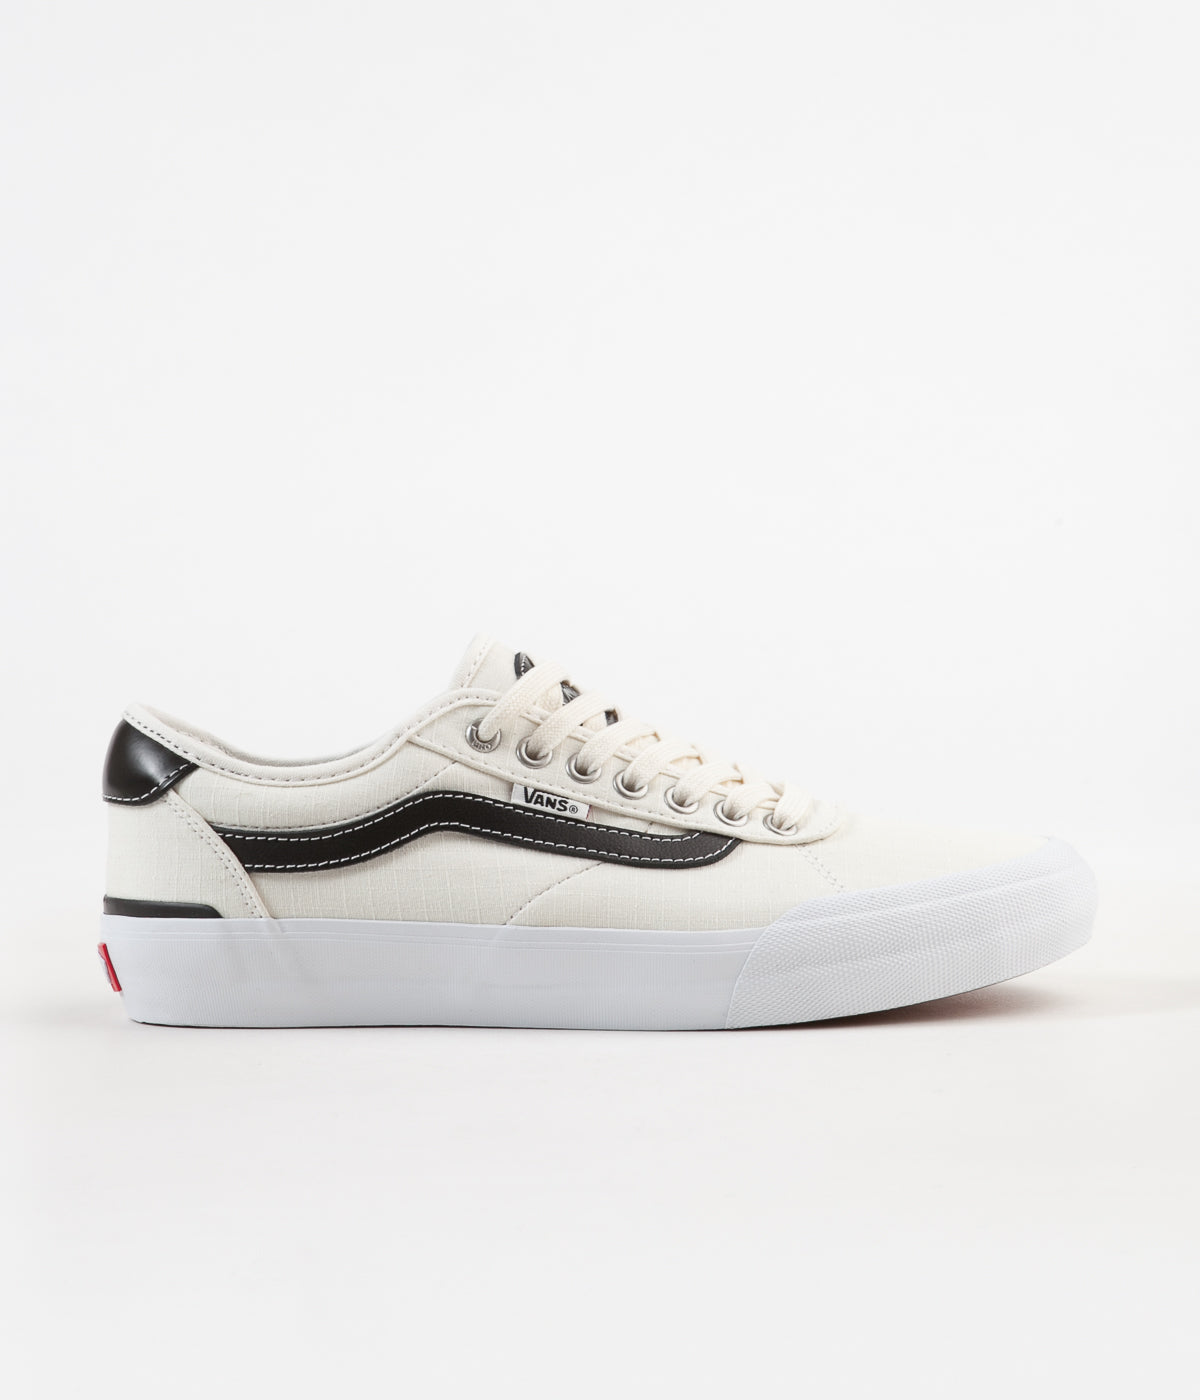 Vans Chima Pro 2 Shoes - (Covert) Marshmallow / Black